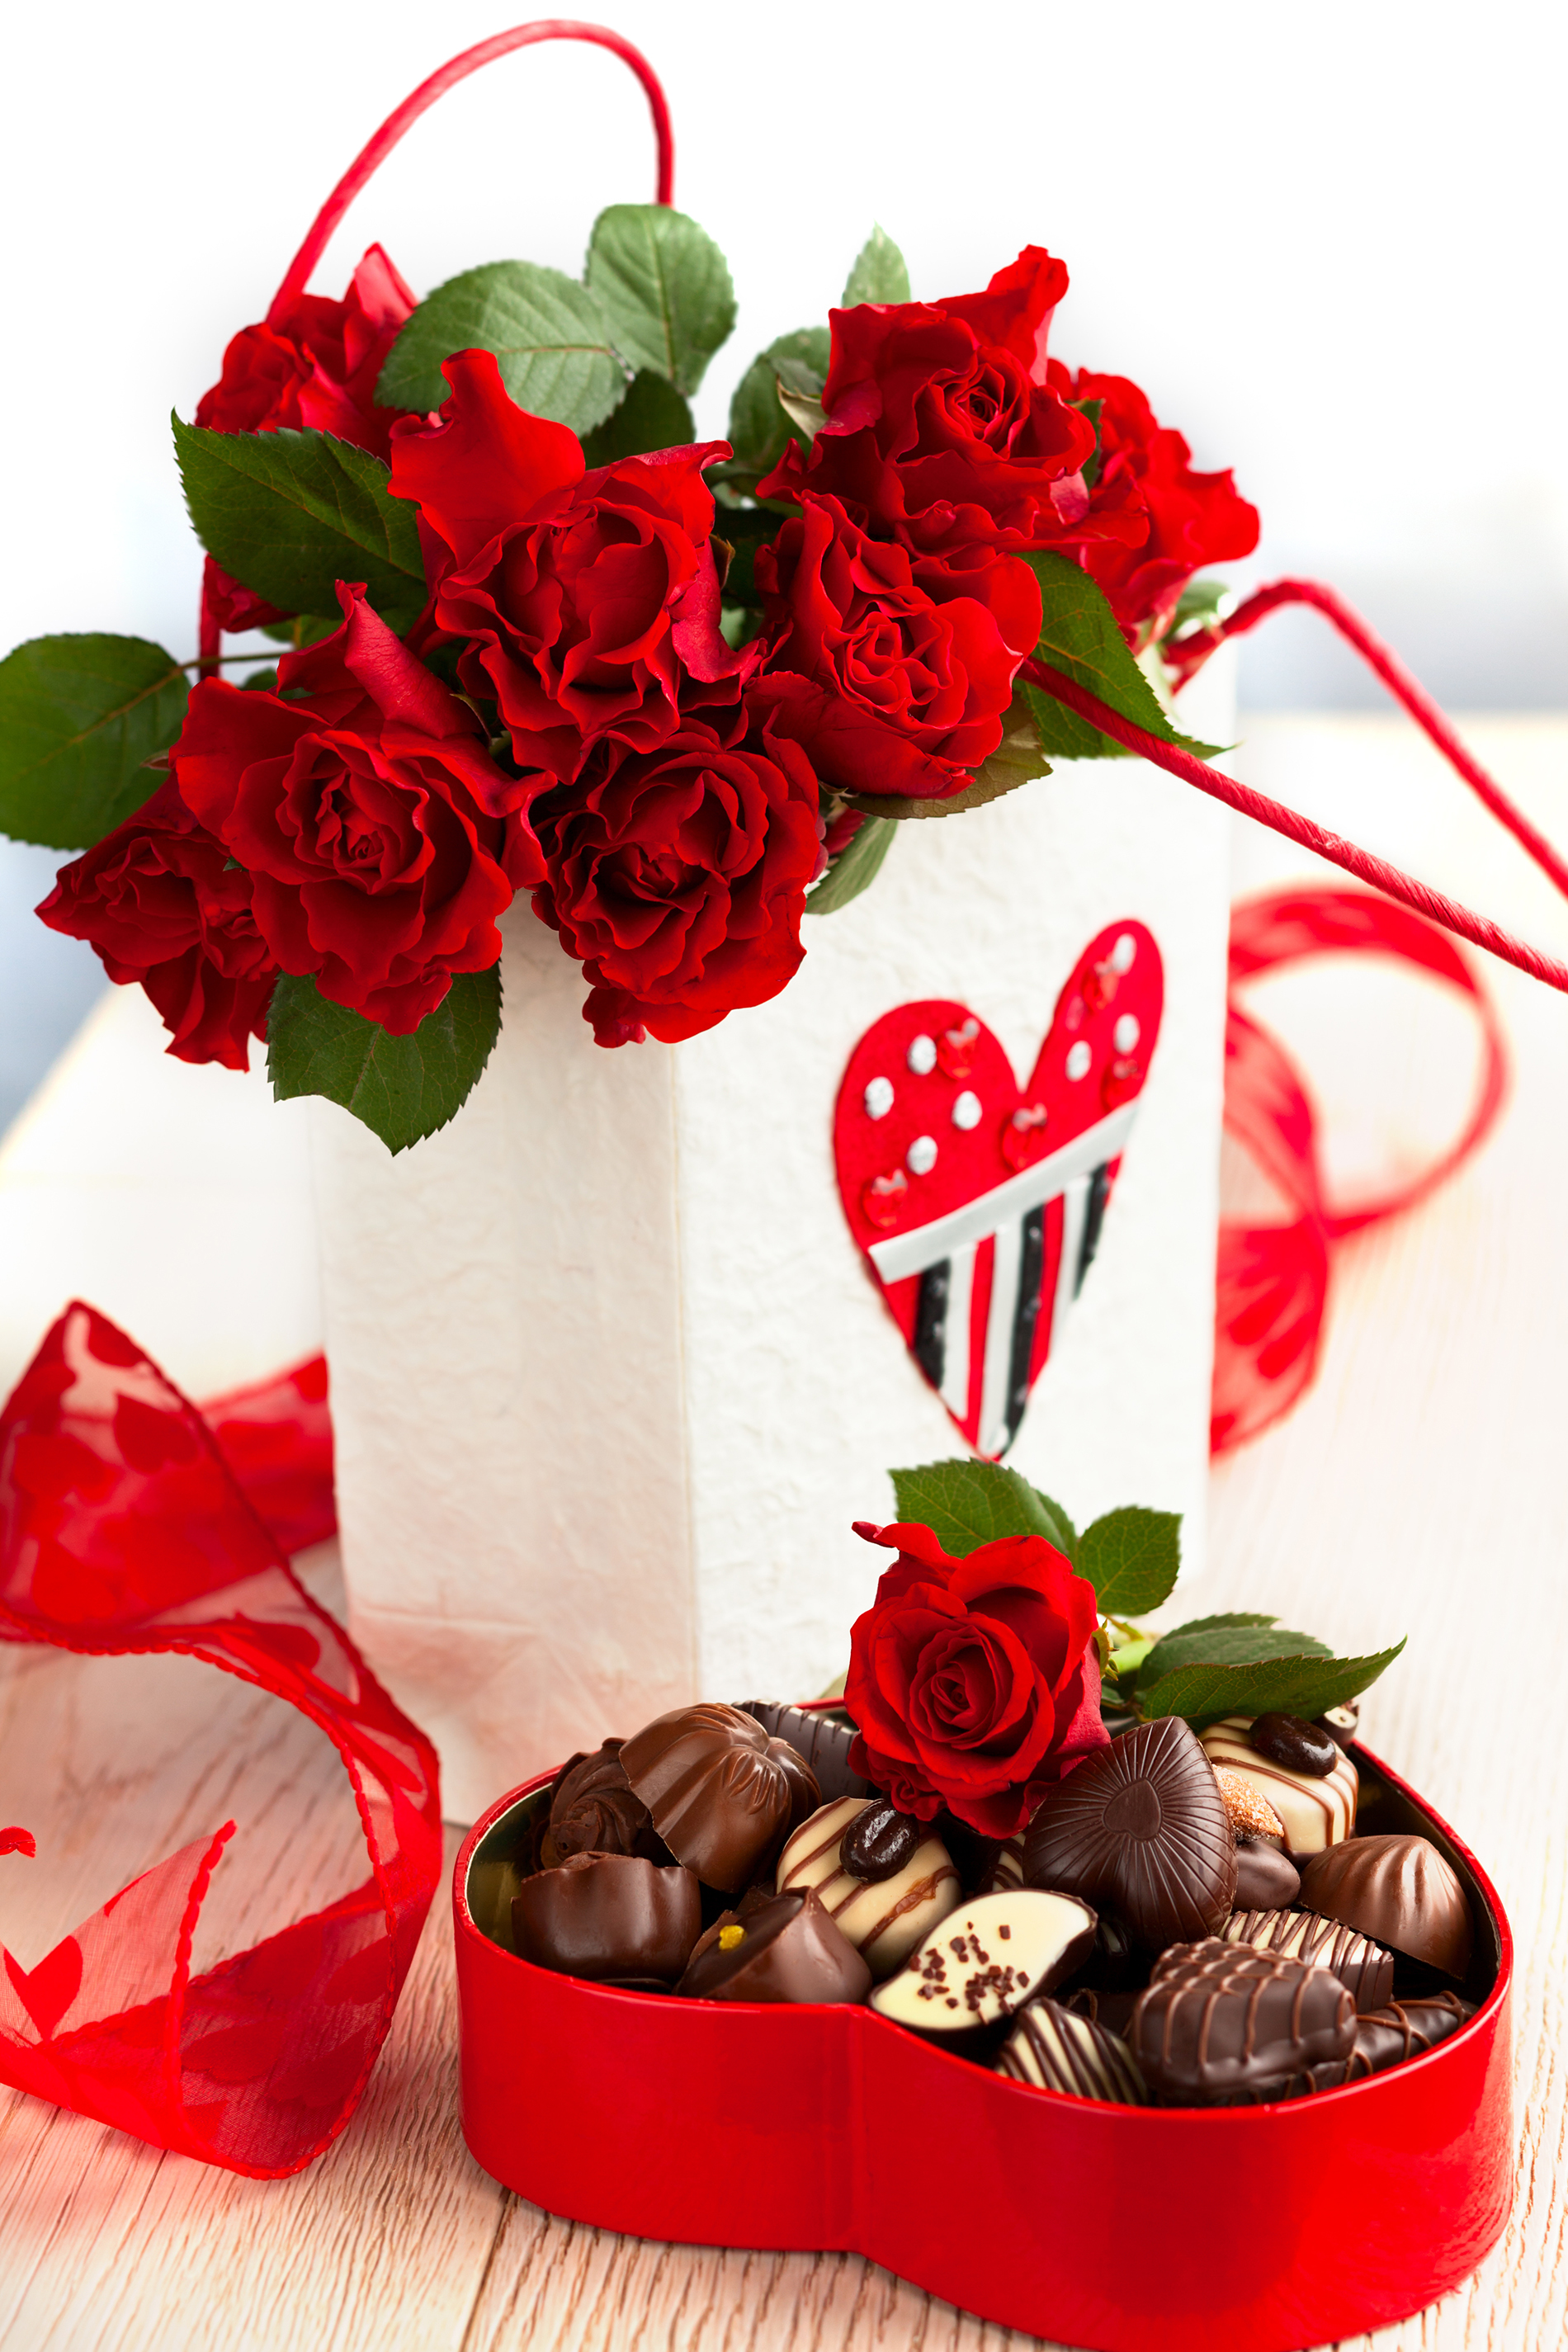 Red rose flower with chocolate 54499